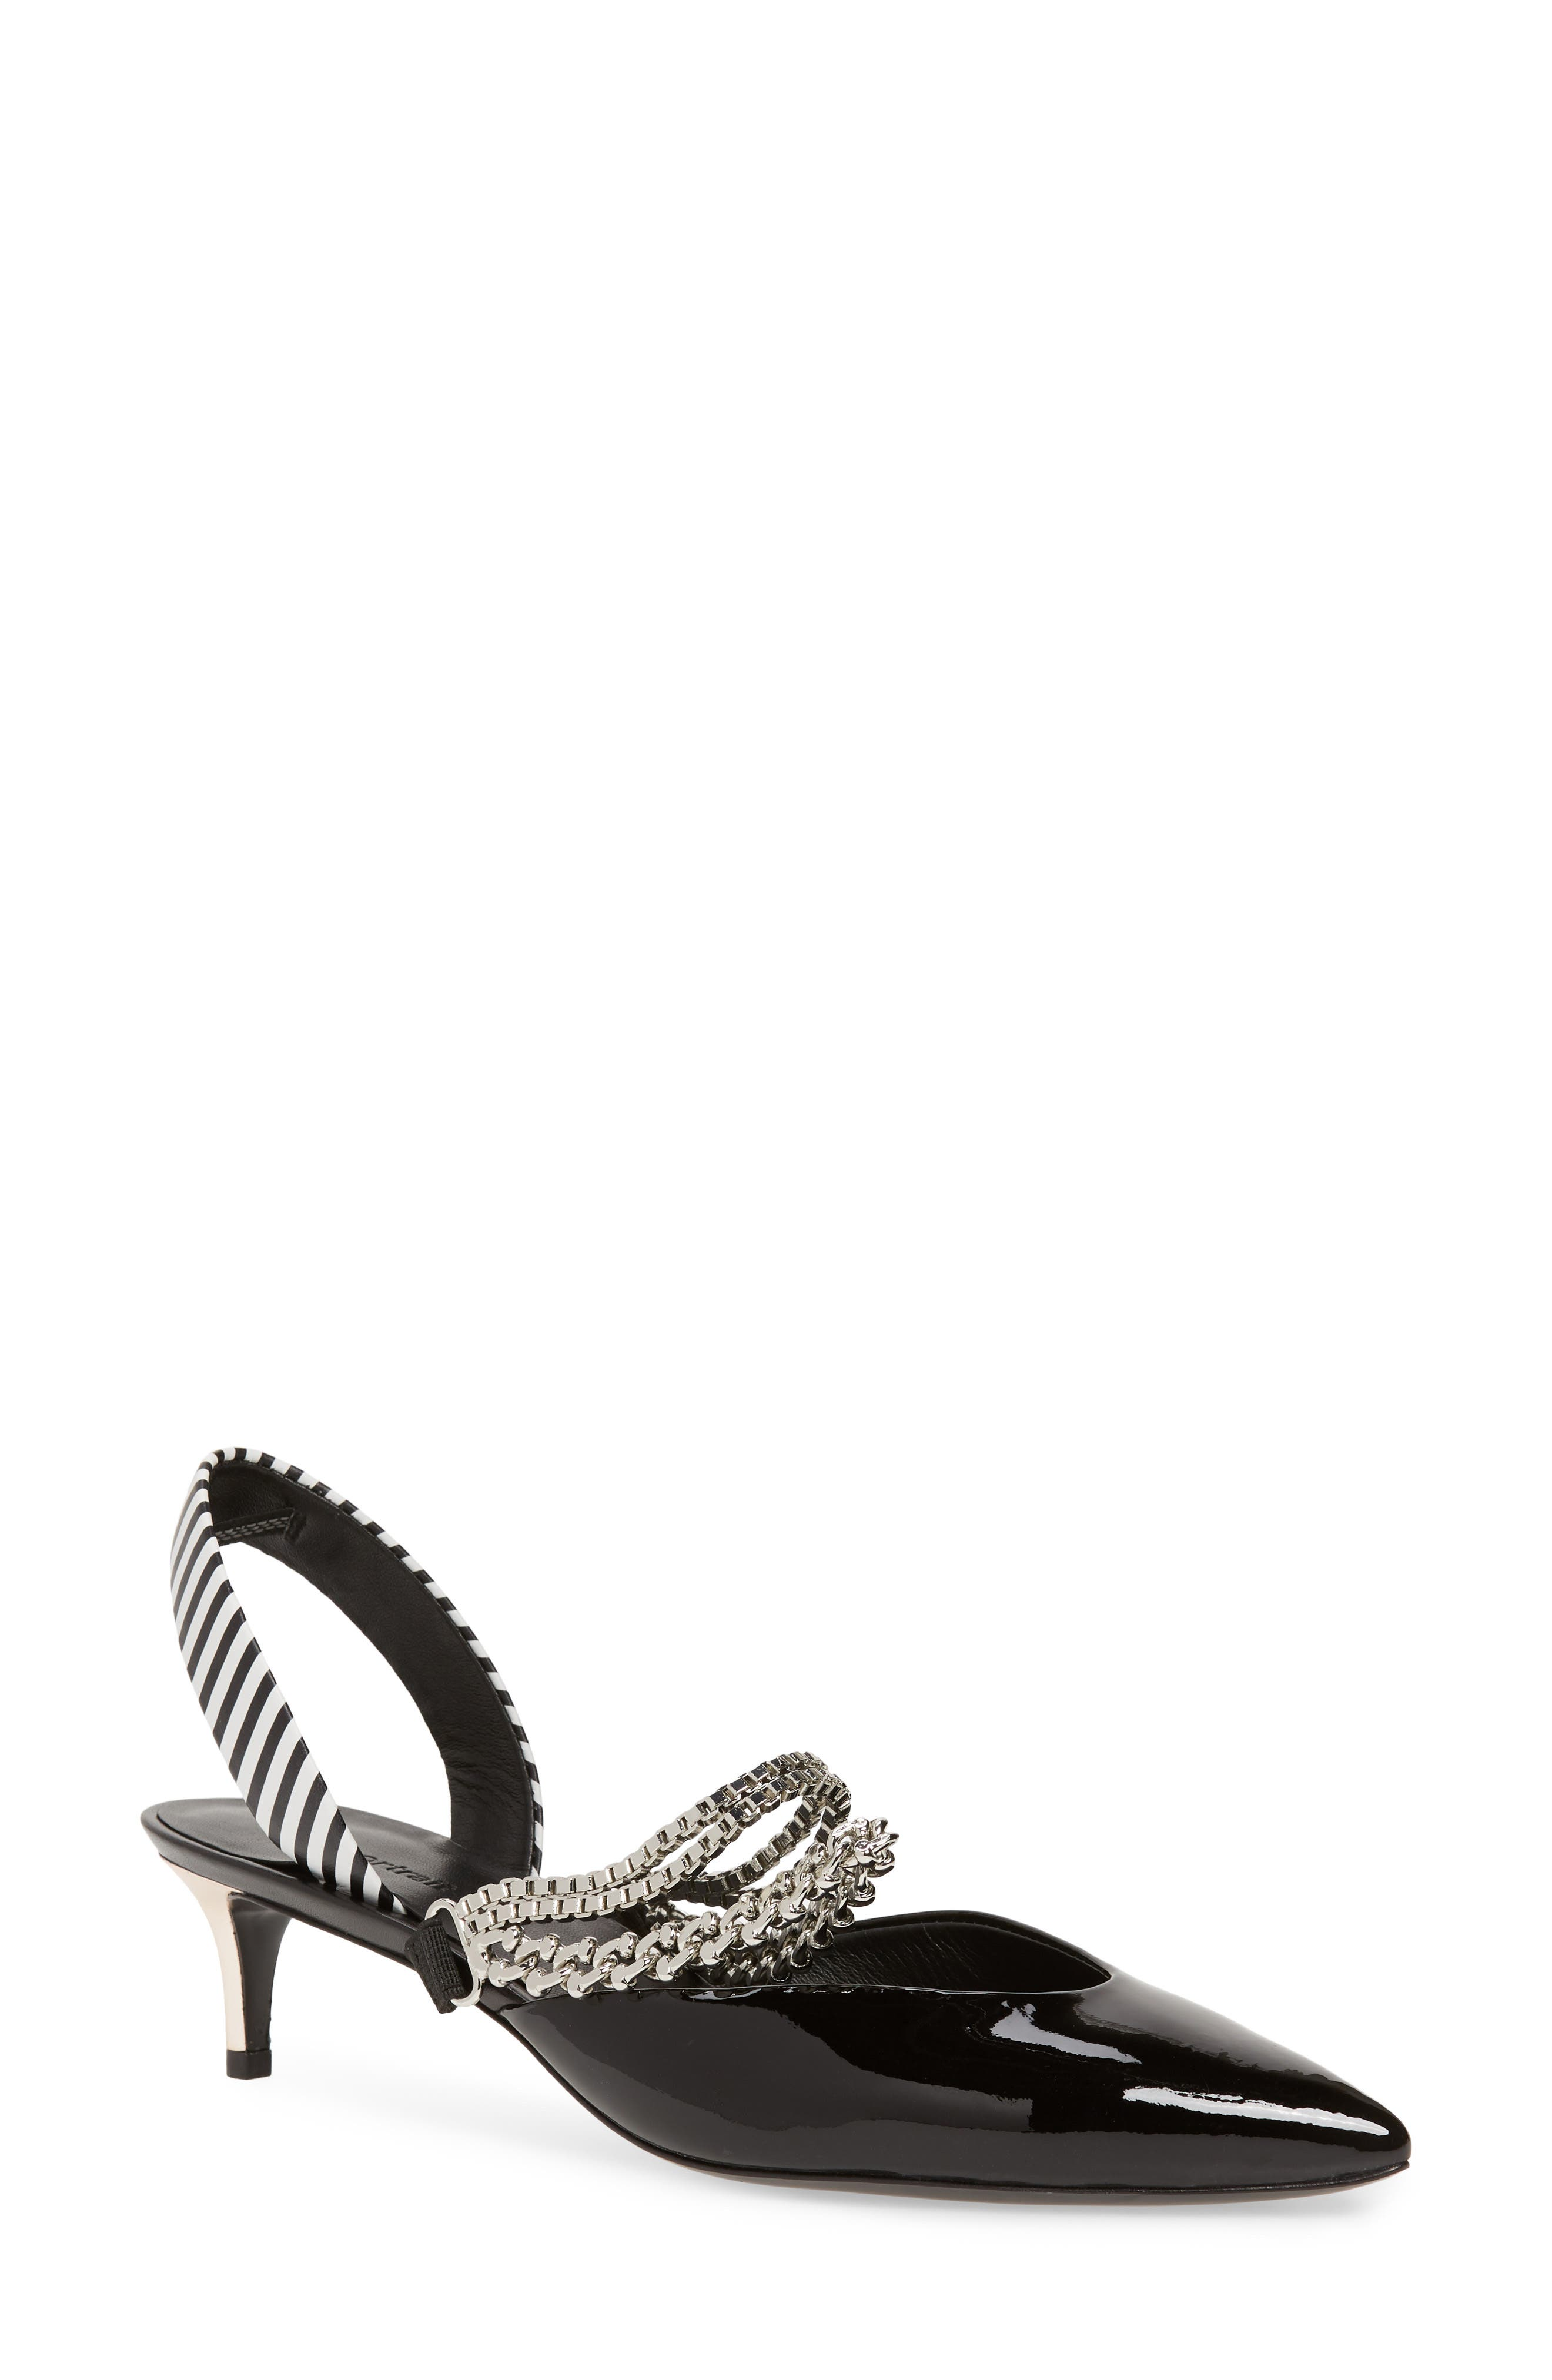 Kitty Chain Embellished Slingback Pump,                         Main,                         color, 001